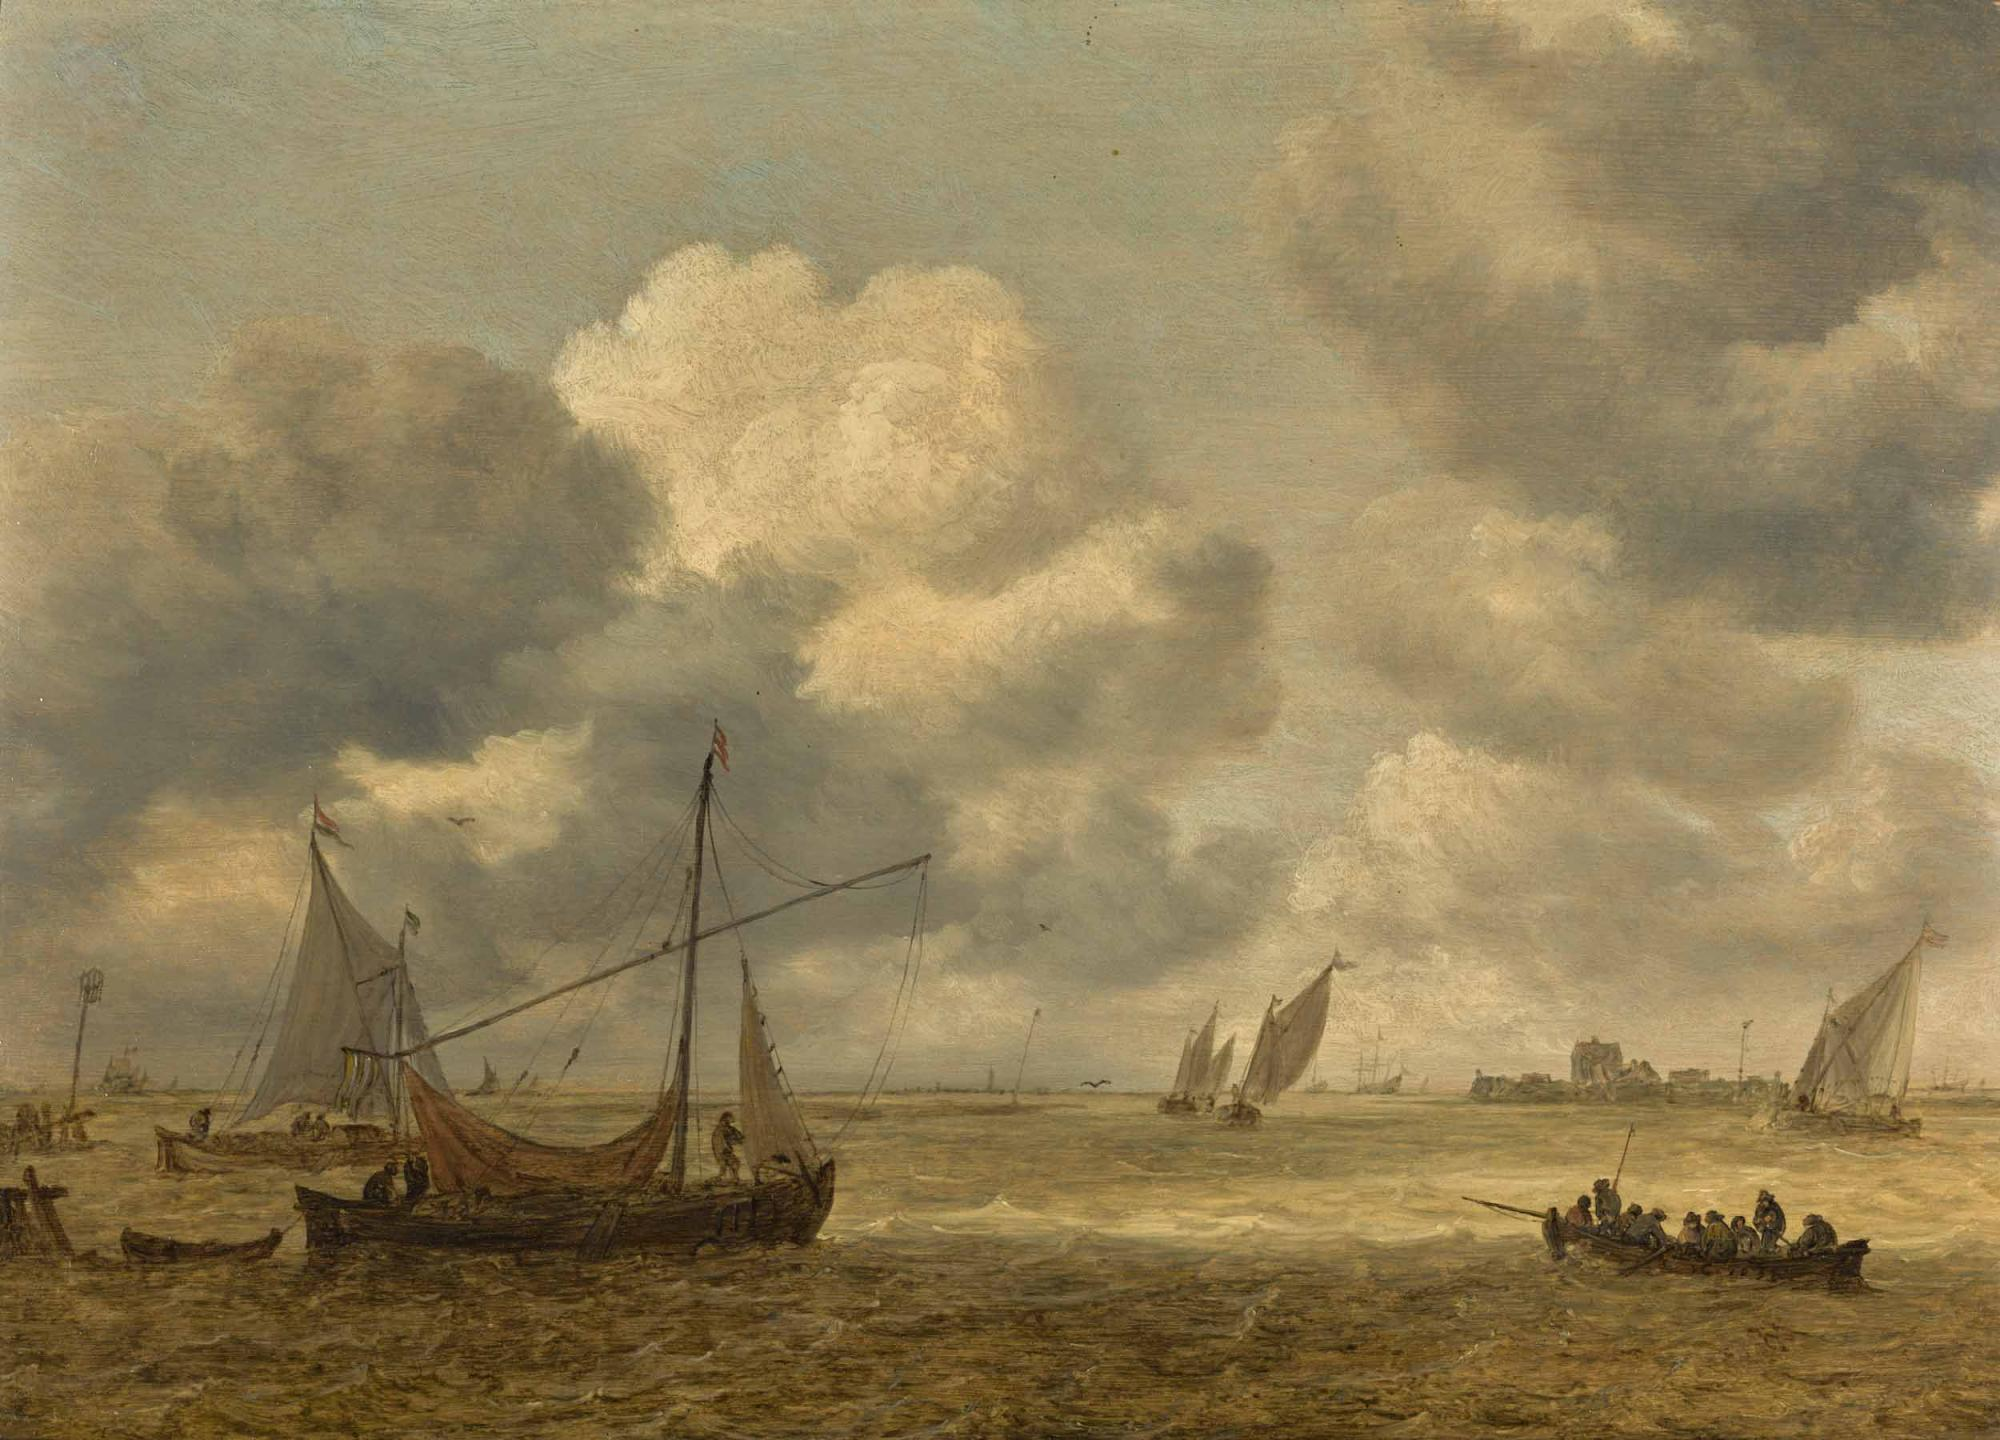 Lot-21-Jan-Josefsz-van-Goyen-Coastal-Scene-with-Small-Vessels.jpg